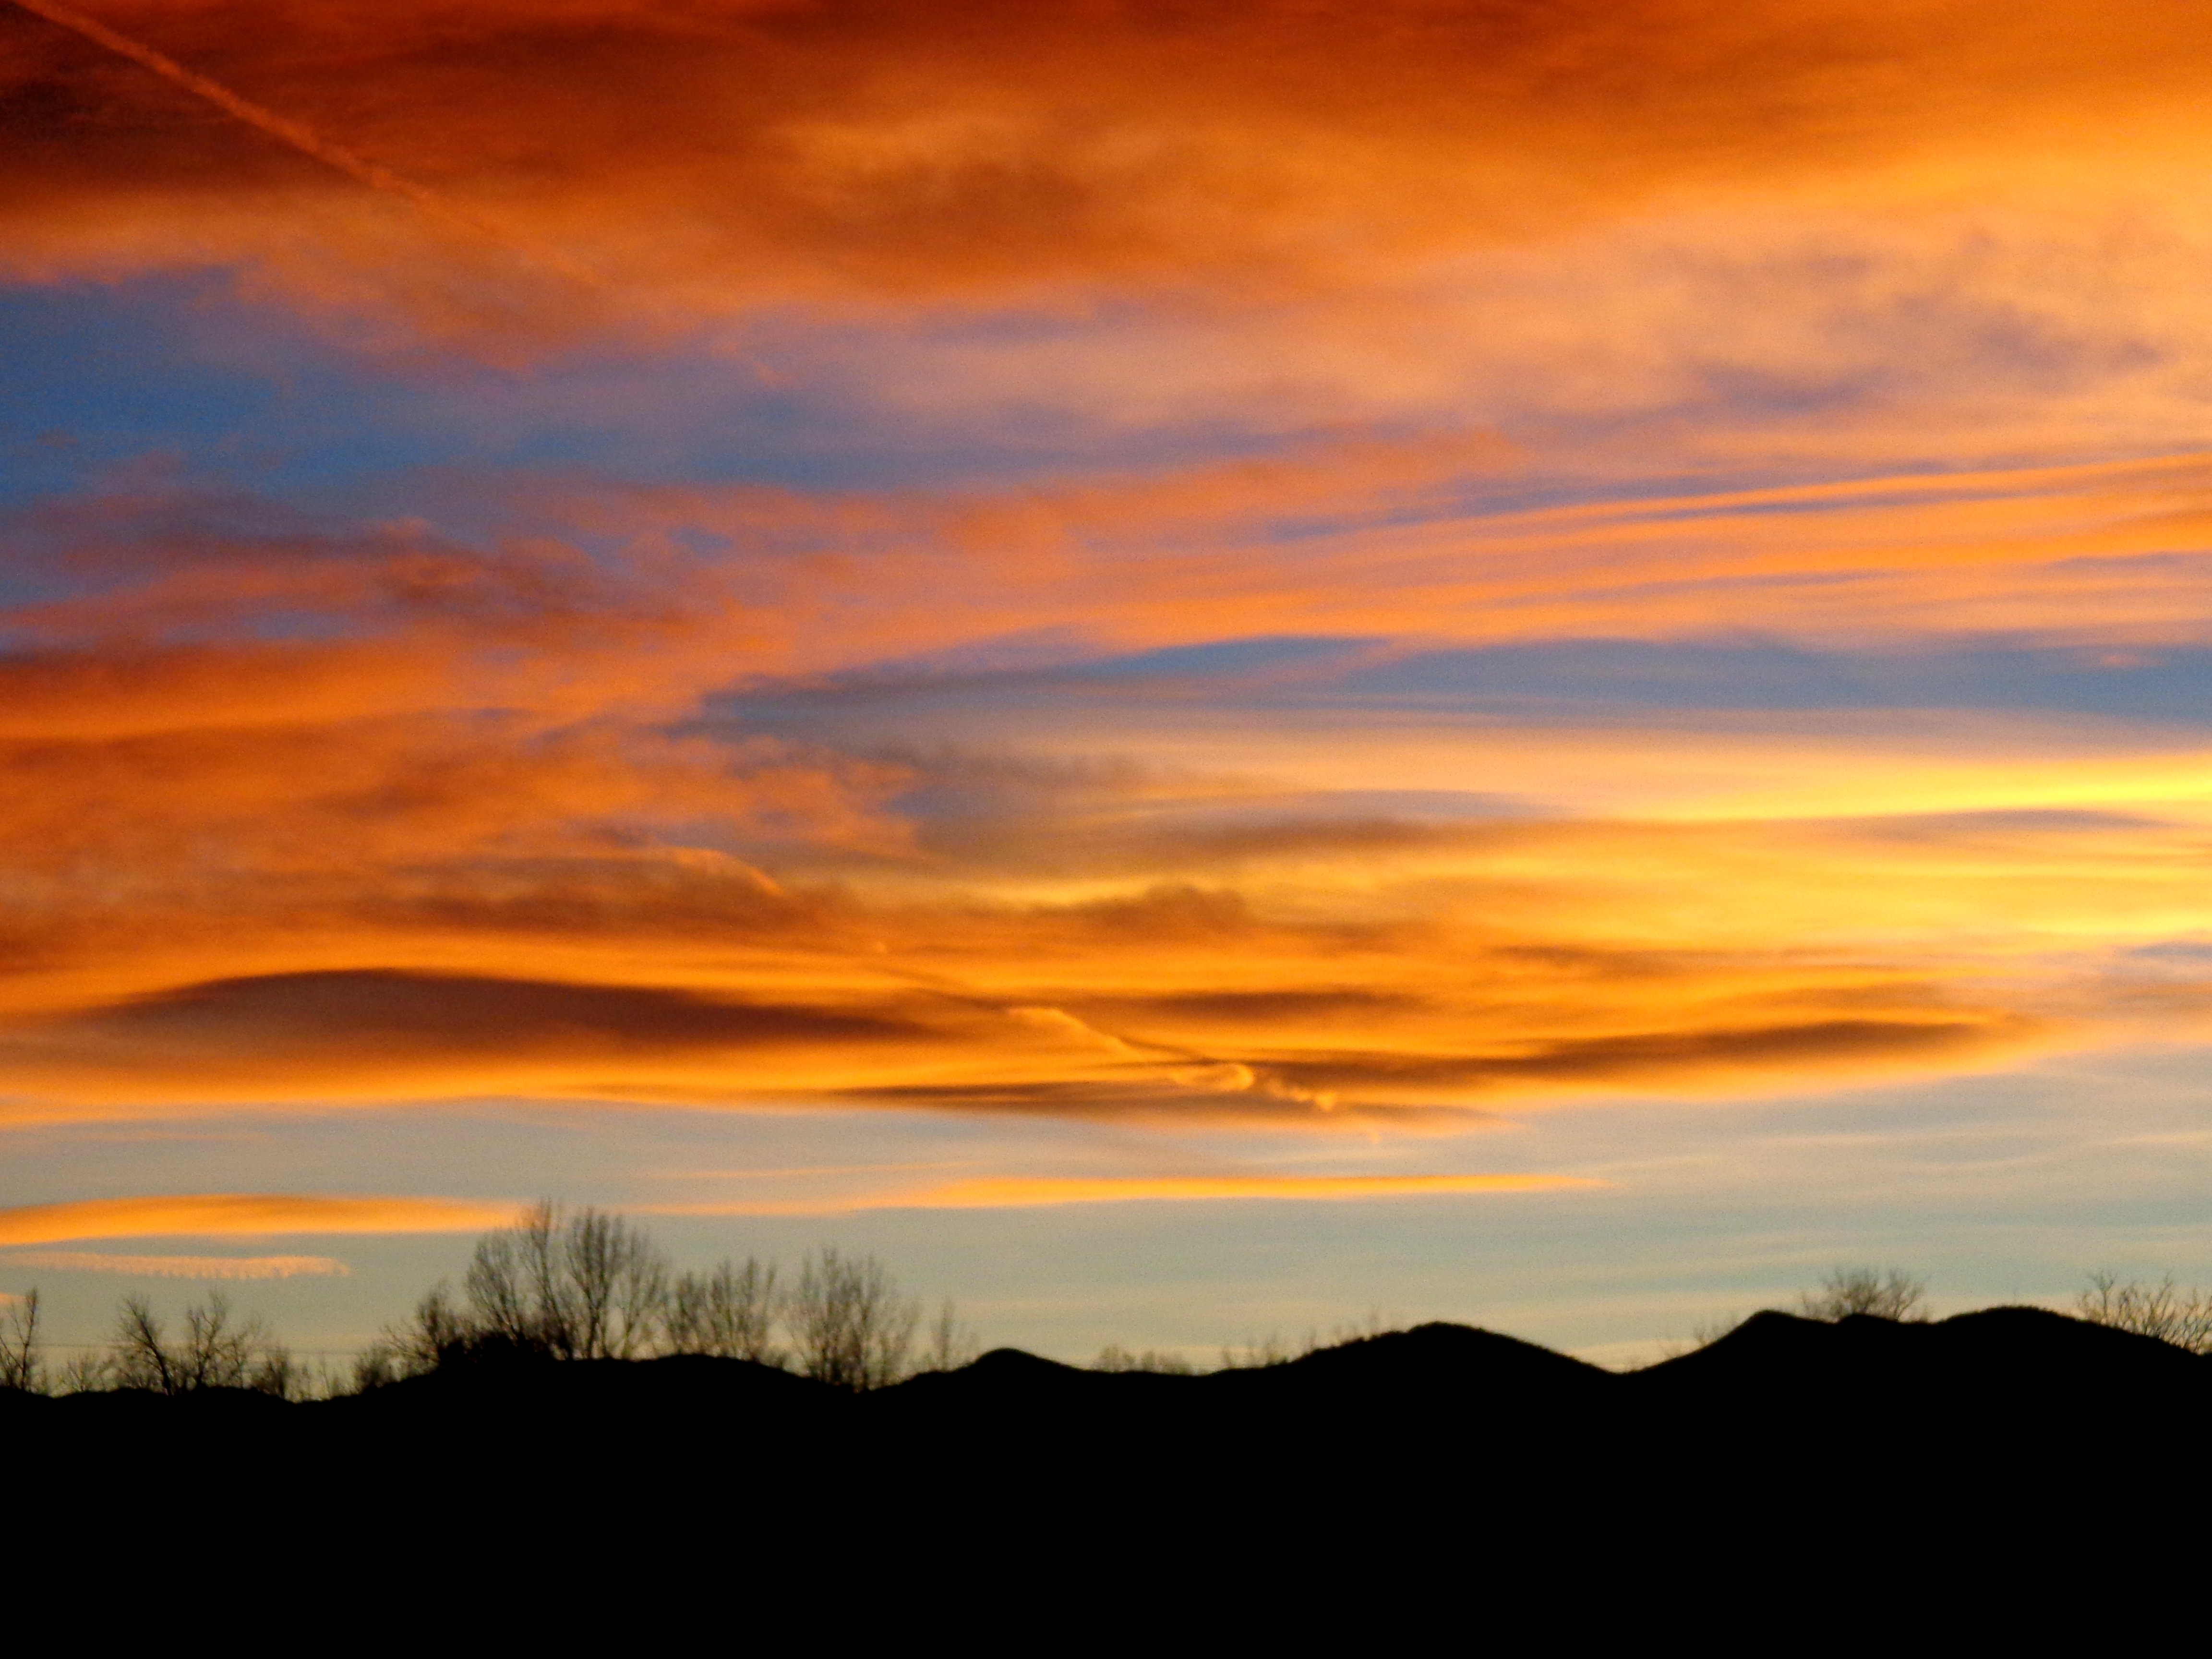 Orange And Blue Sunset Over Rolling Hills Picture Free